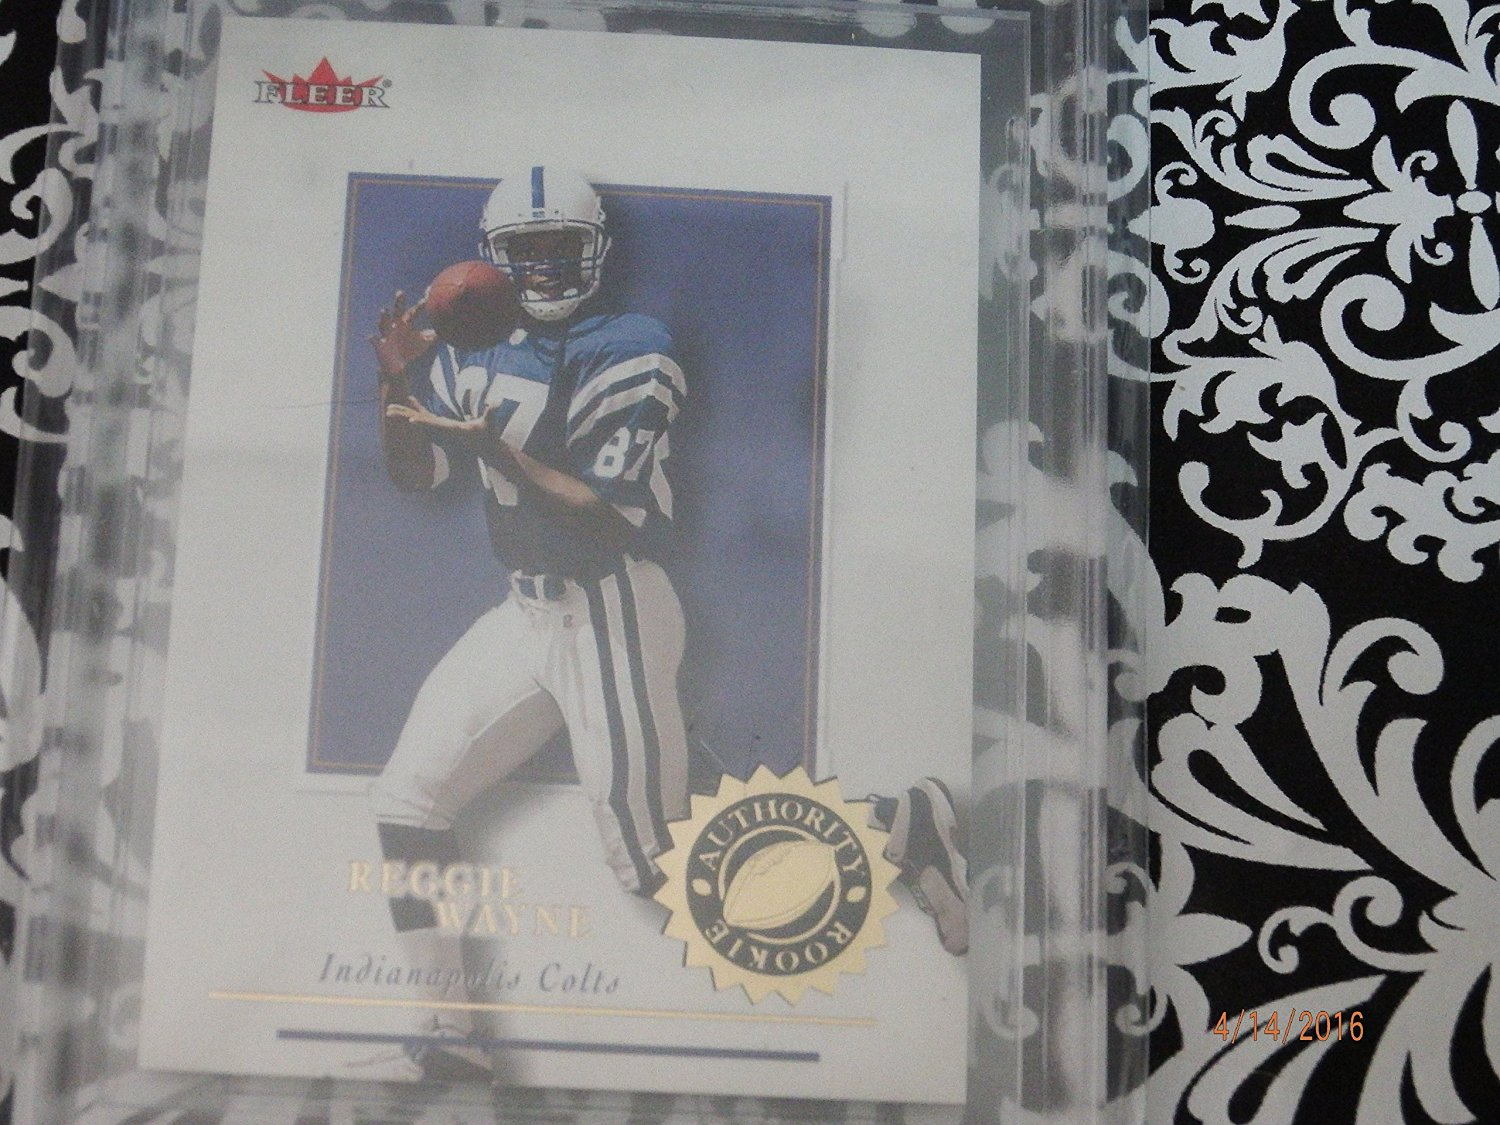 2001 Fleer Authority Reggie Wayne #/1350 #111 Colts Rookie RC BGS 9 Mint